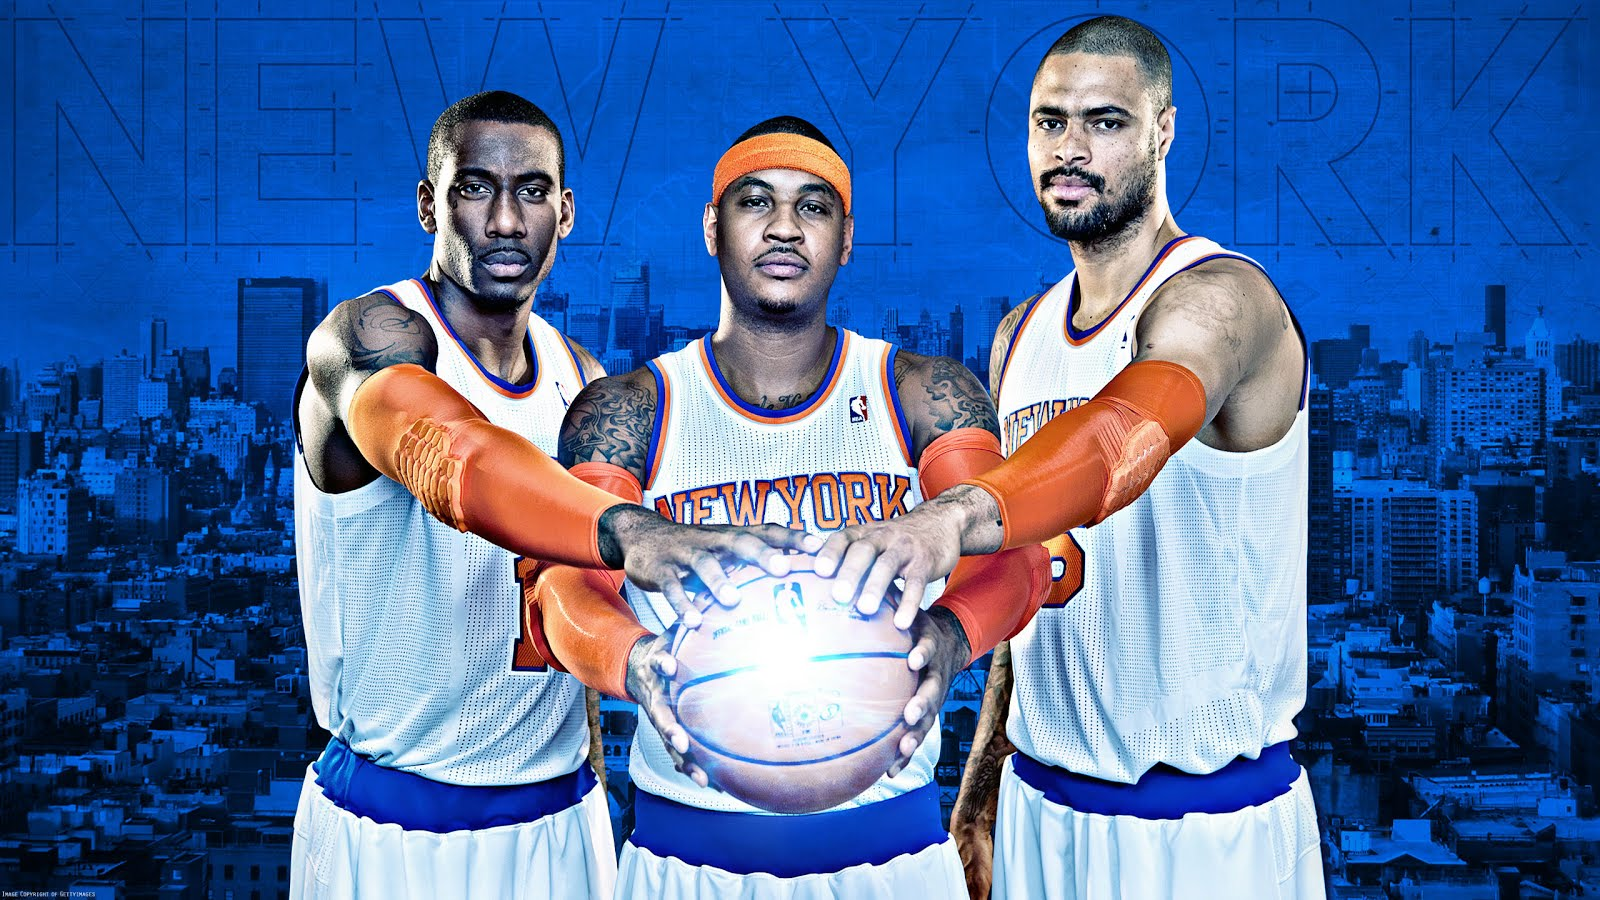 Knicks 2013 big 3 wallpaper big fan of nba daily update since 2002 the knicks struggled to recapture their former success only making the playoffs three times most recently losing to the miami heat in the voltagebd Image collections